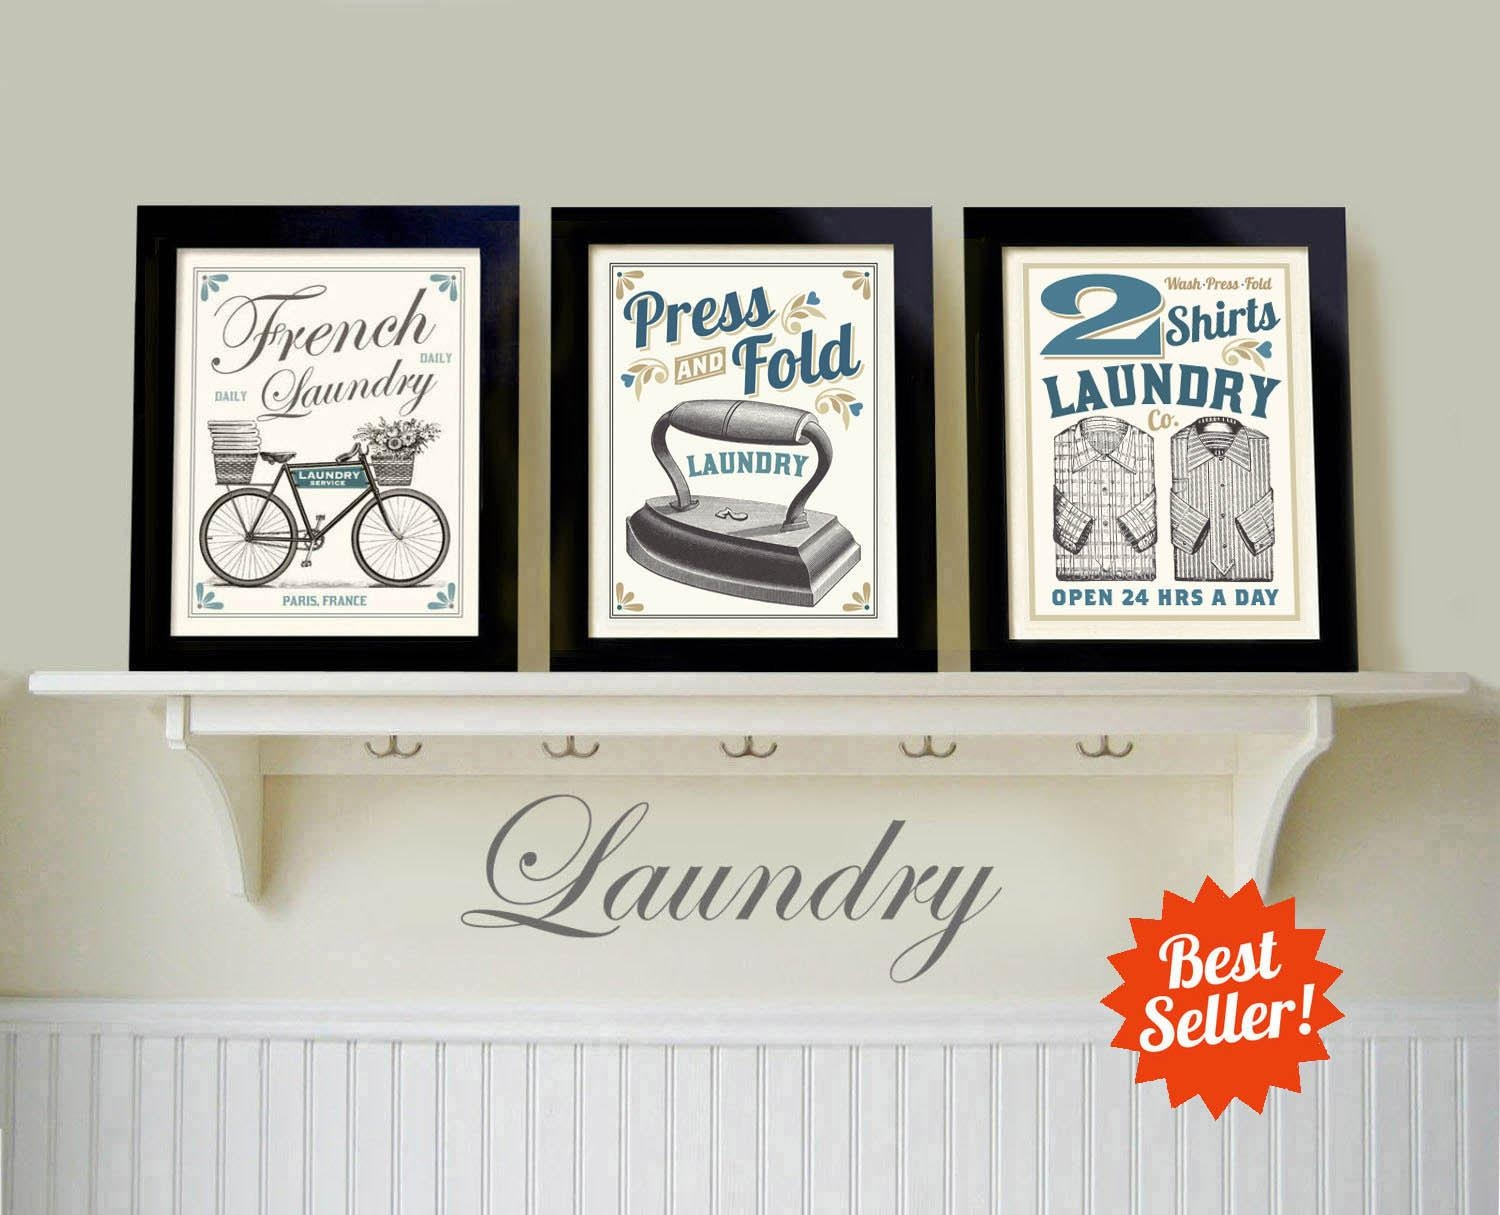 Laundry Room Art Old Fashioned Prints French Country Art Within French Country Wall Art Prints (Image 13 of 20)